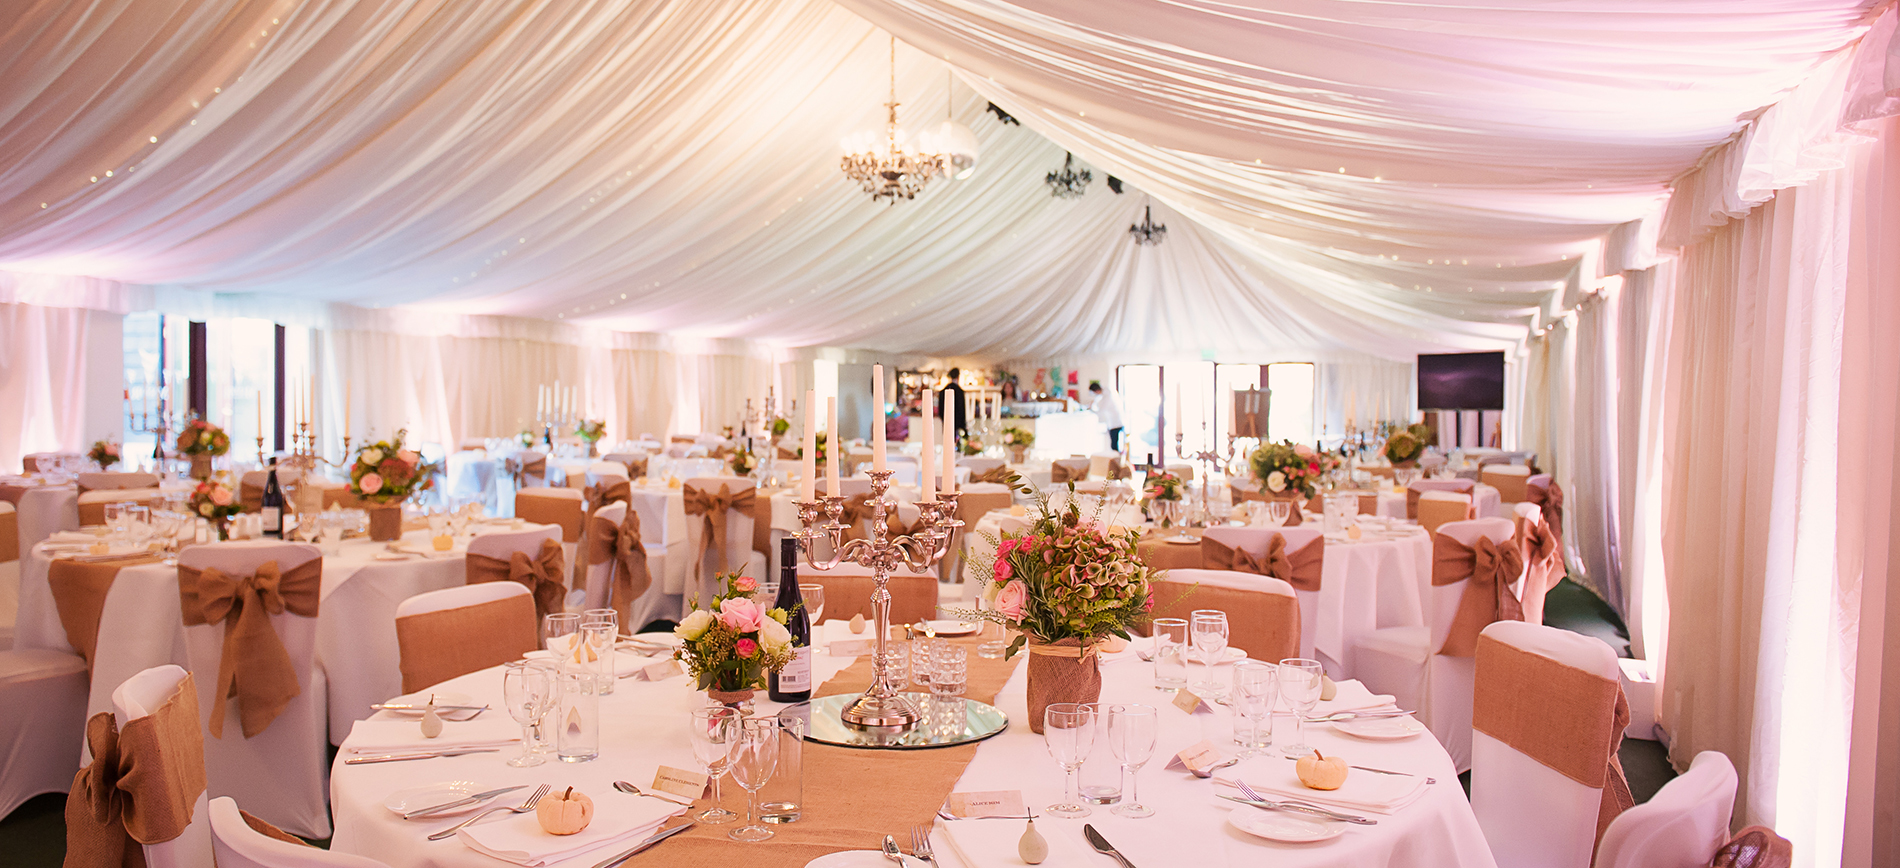 All Manor Of Events Wedding Venue Ipswich Suffolk